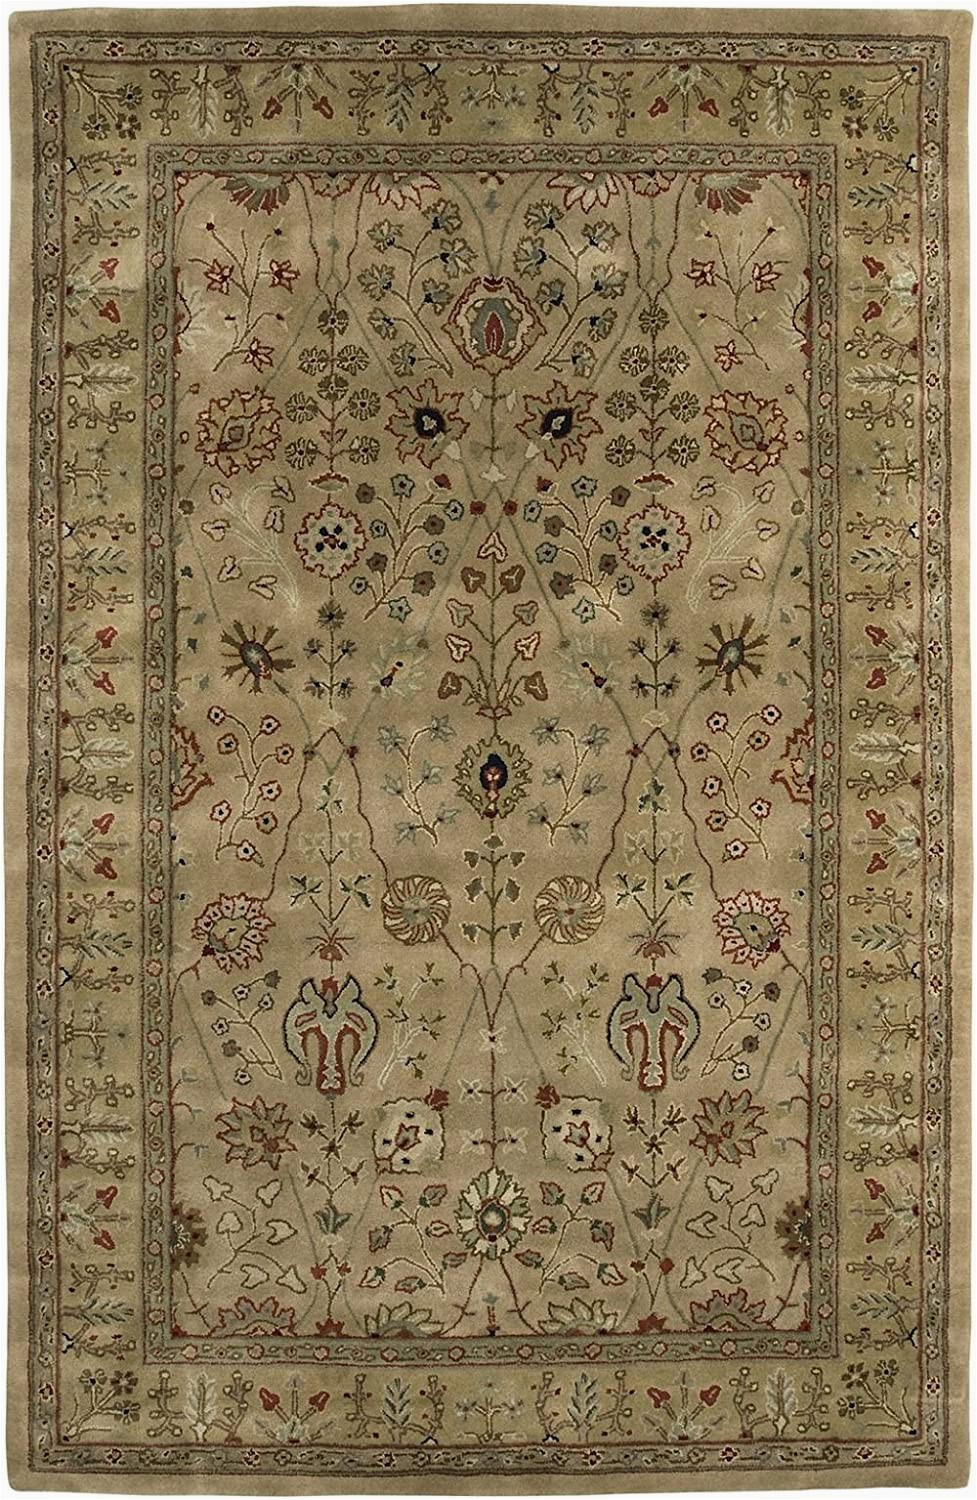 Large Half Moon area Rugs area Rug 7×7 Round Traditional Gold Dark Gold Color Amer